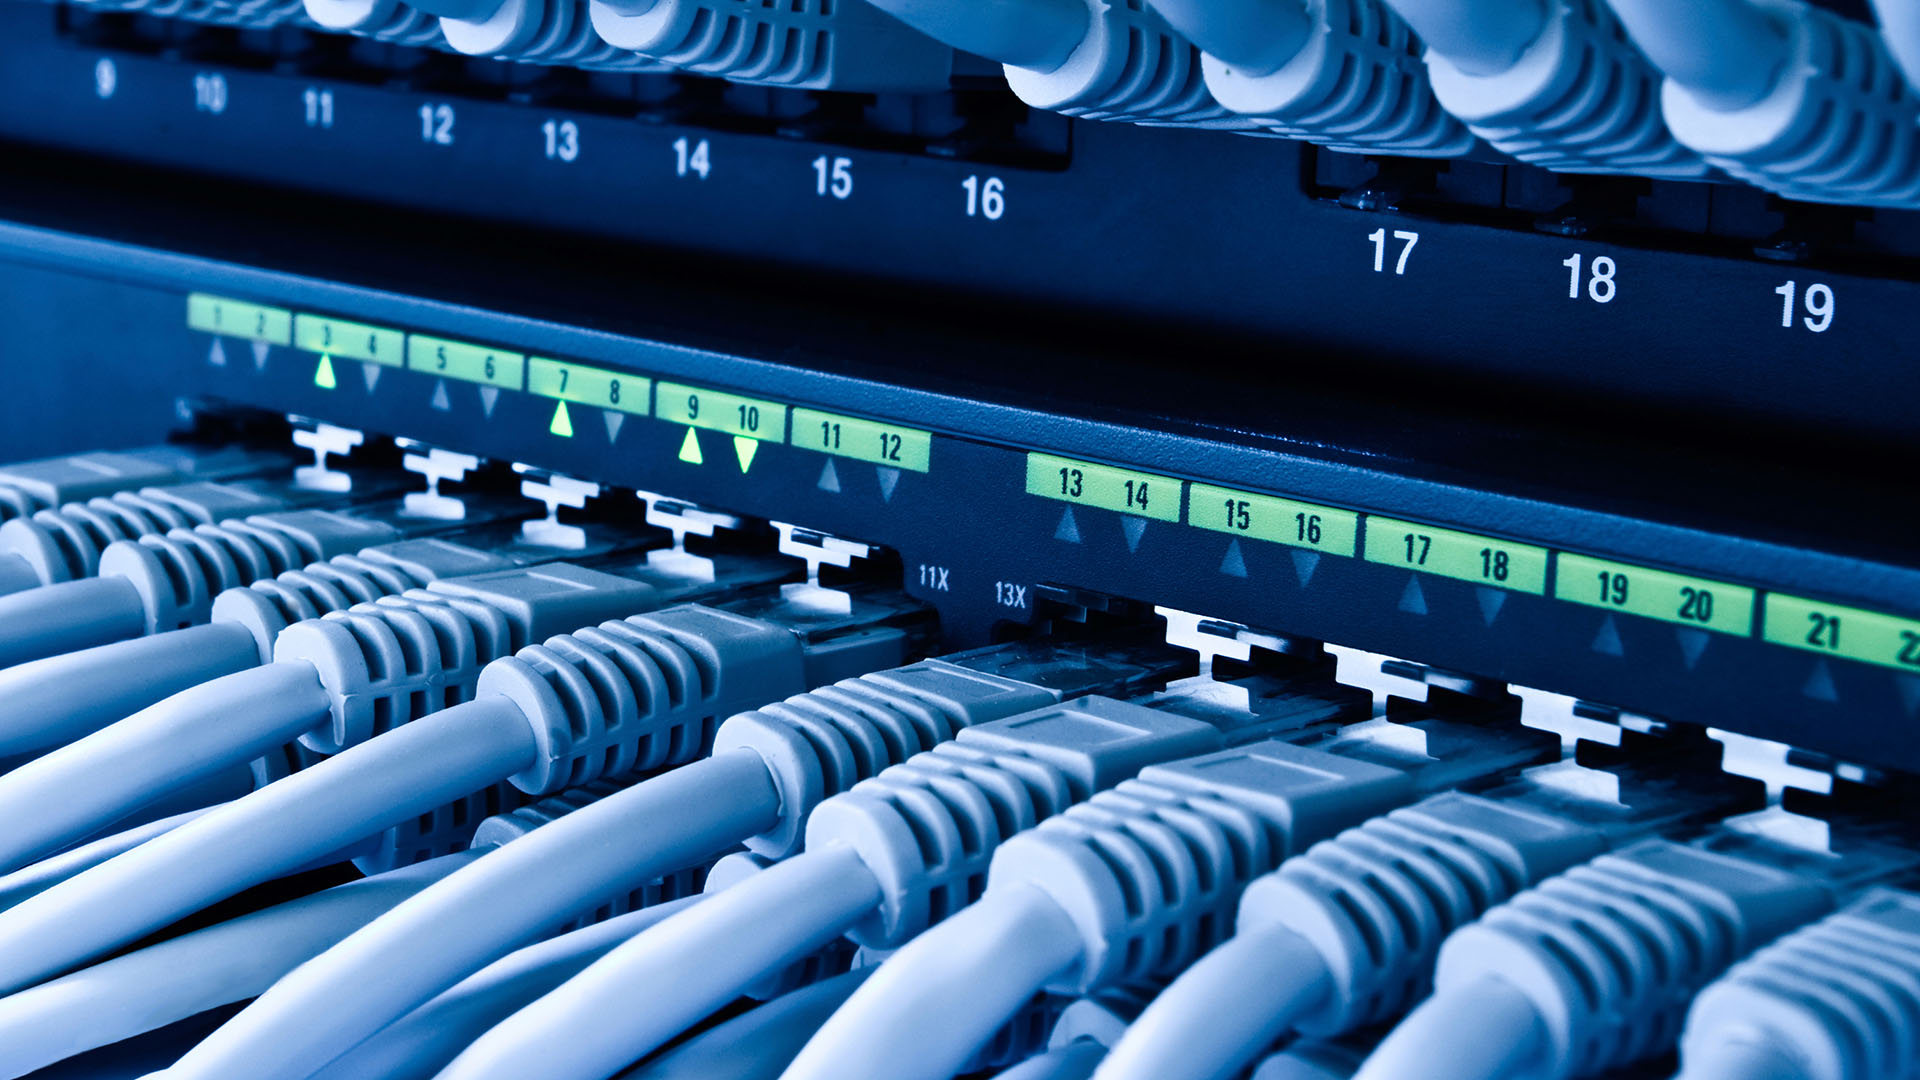 Sunrise Florida Trusted Voice & Data Network Cabling Services